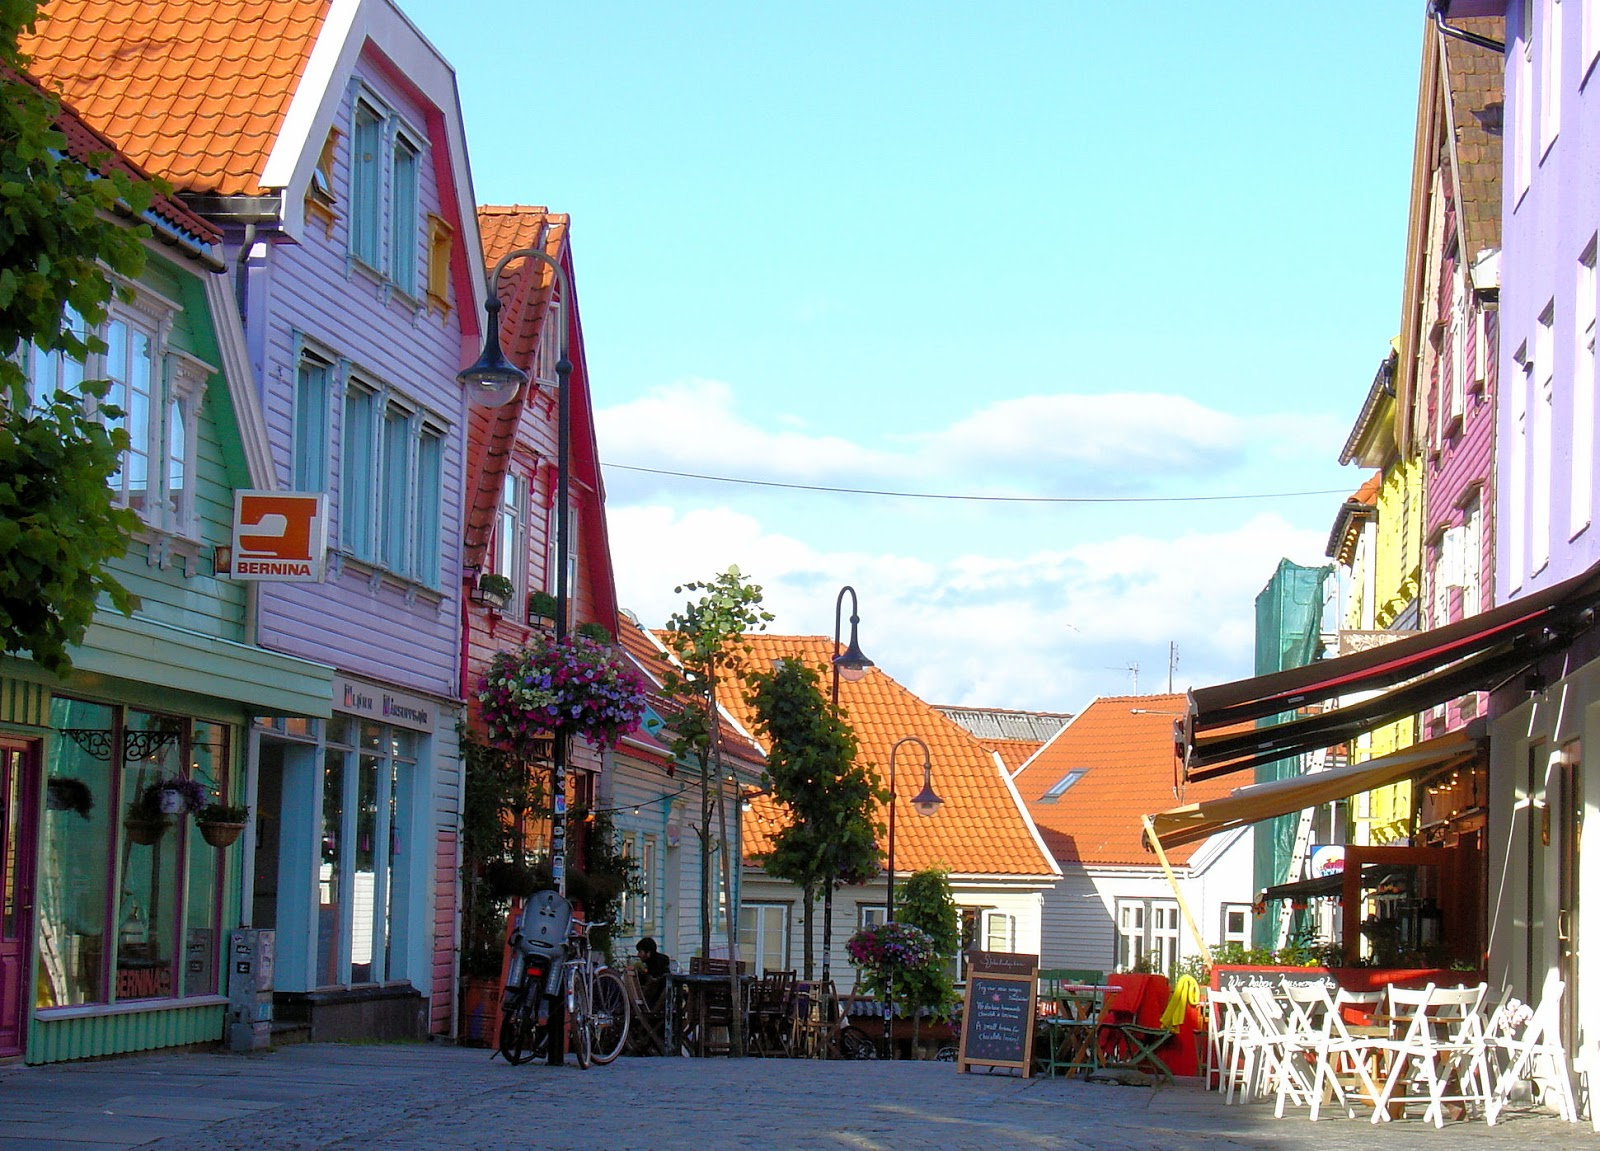 Øvre Hommegate – Stavanger's most colorful street. Don't you agree?